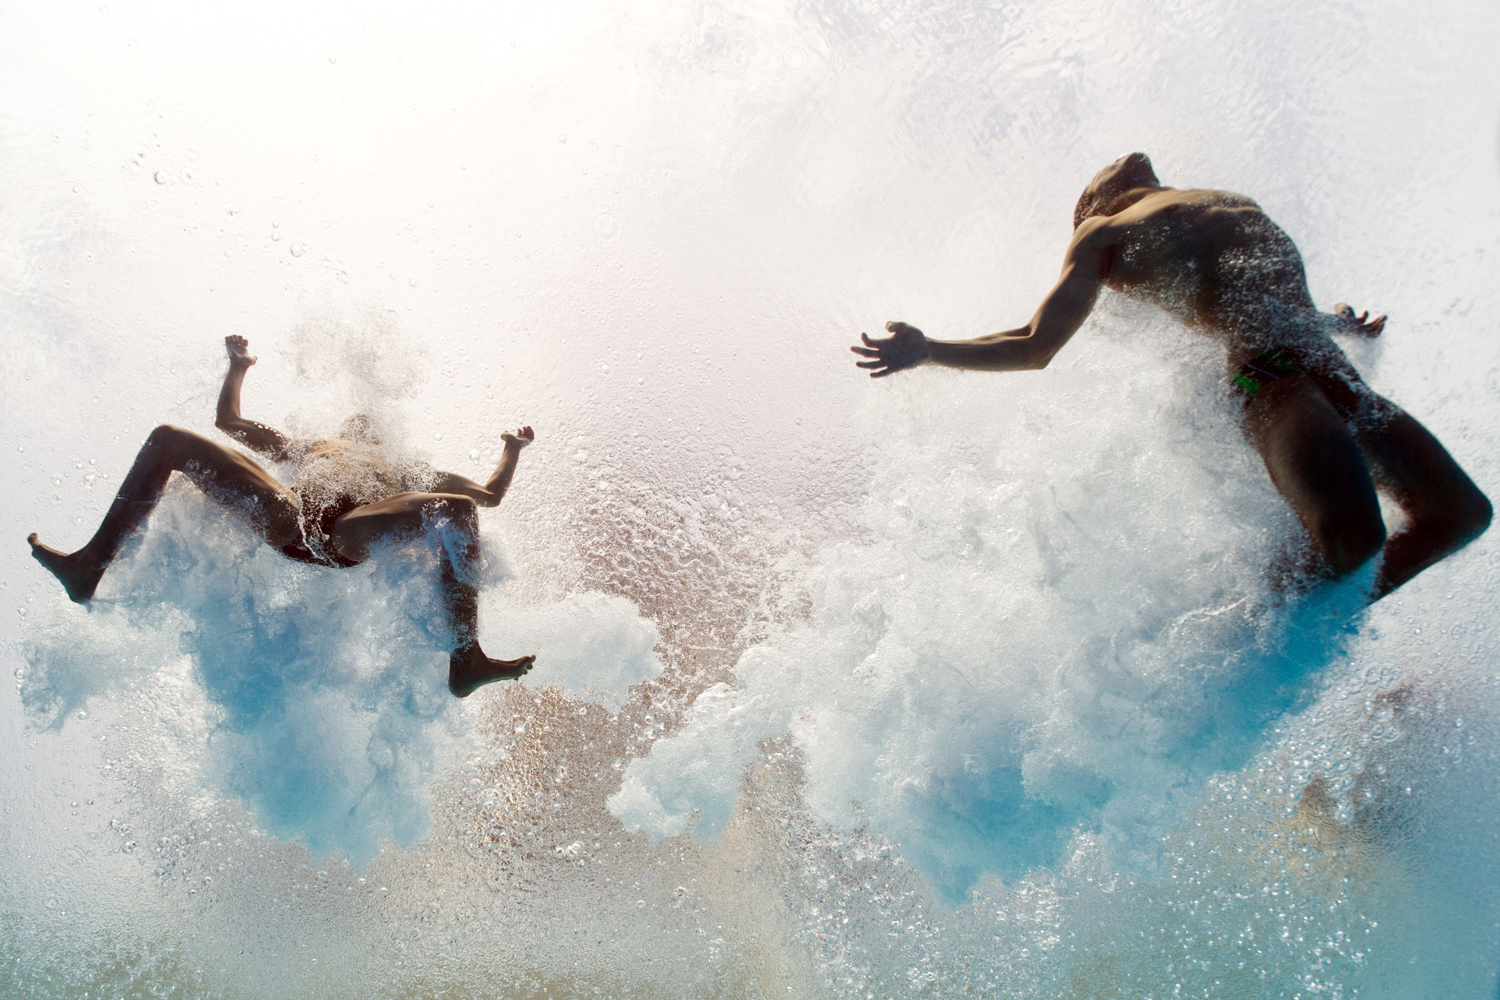 July 21, 2013. Mexico's Ivan Garcia and German Sanchez enter the water as they compete in the men's 10-meter synchro platform preliminary diving event in the FINA World Championships at the Piscina Municipal de Montjuic in Barcelona, Spain.